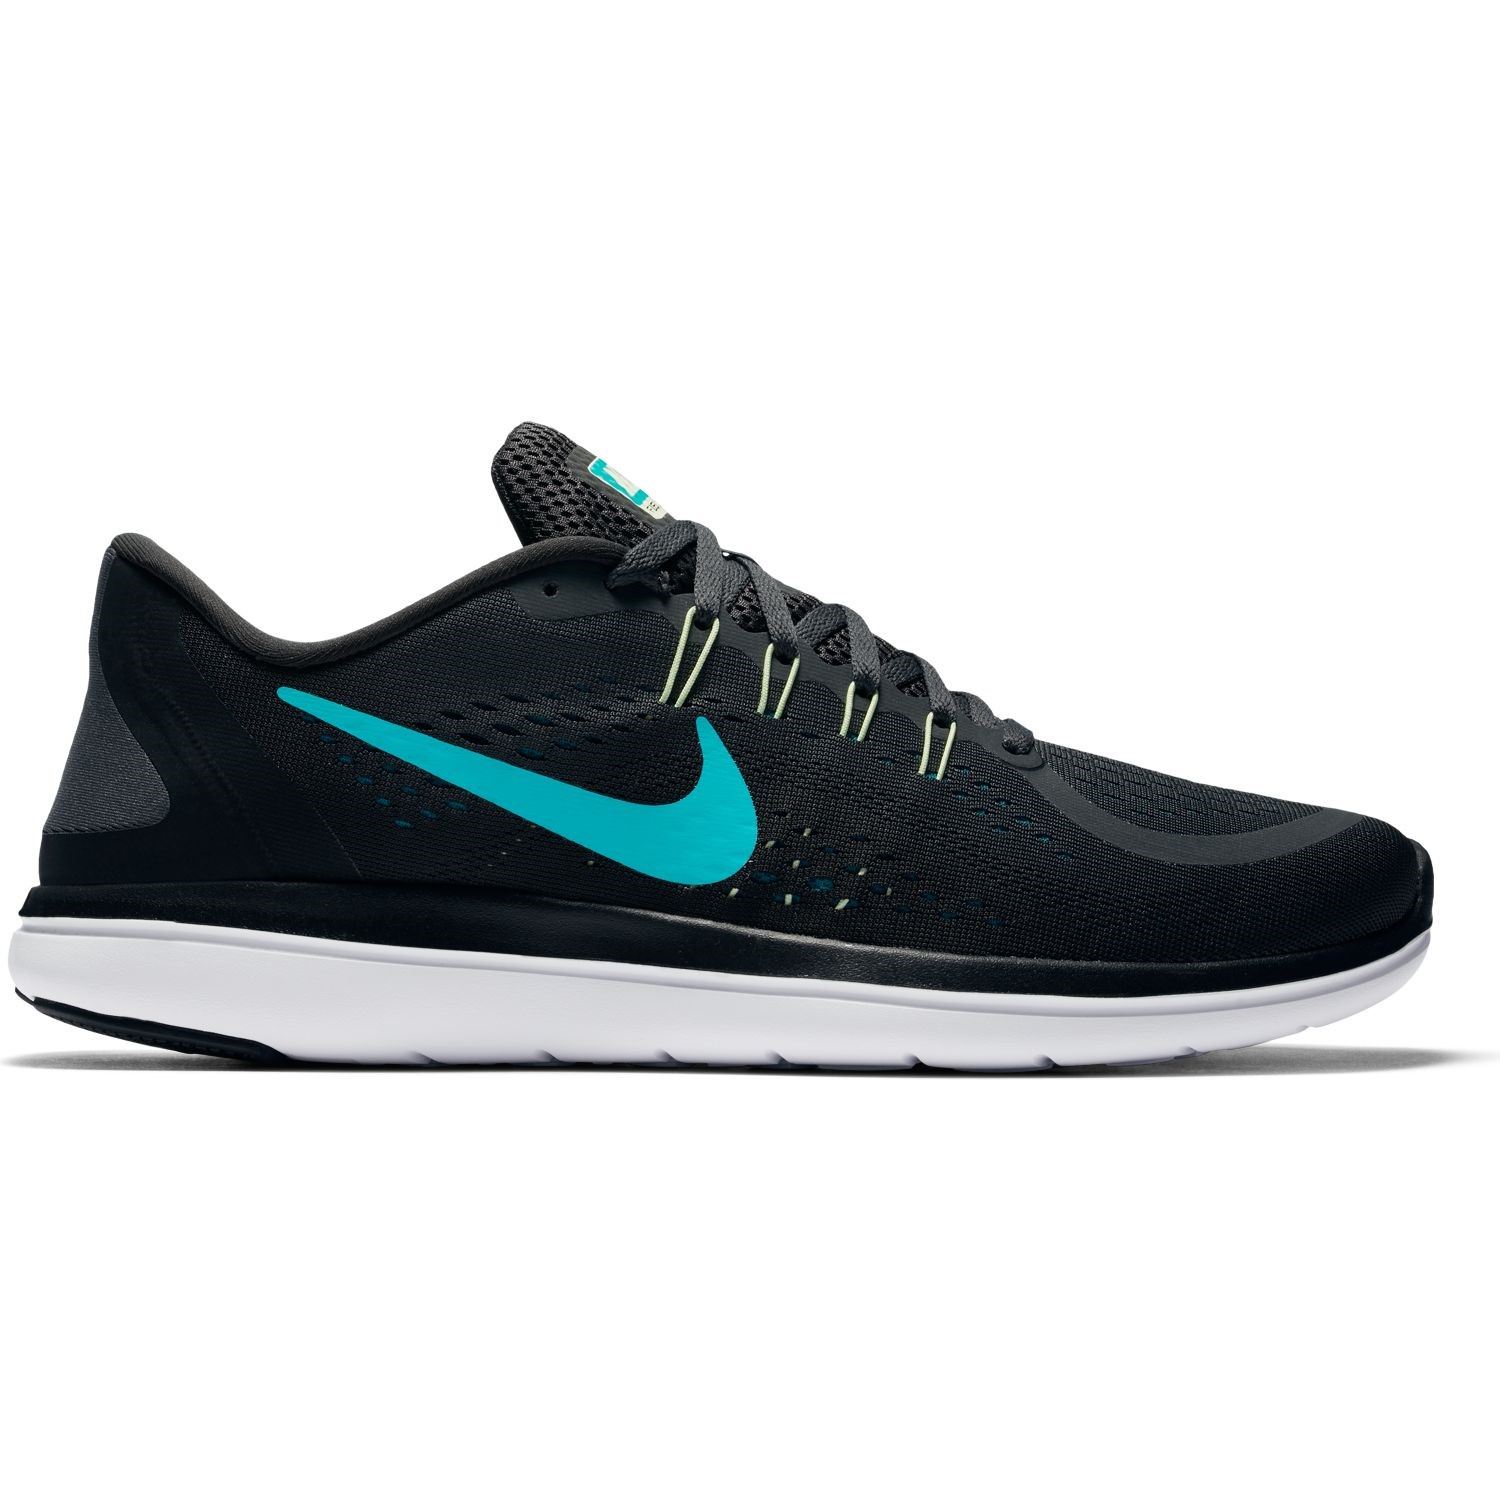 c3cce28d9ee20 Nike Flex 2017 RN - Mens Running Shoes - Anthracite Clear Jade ...